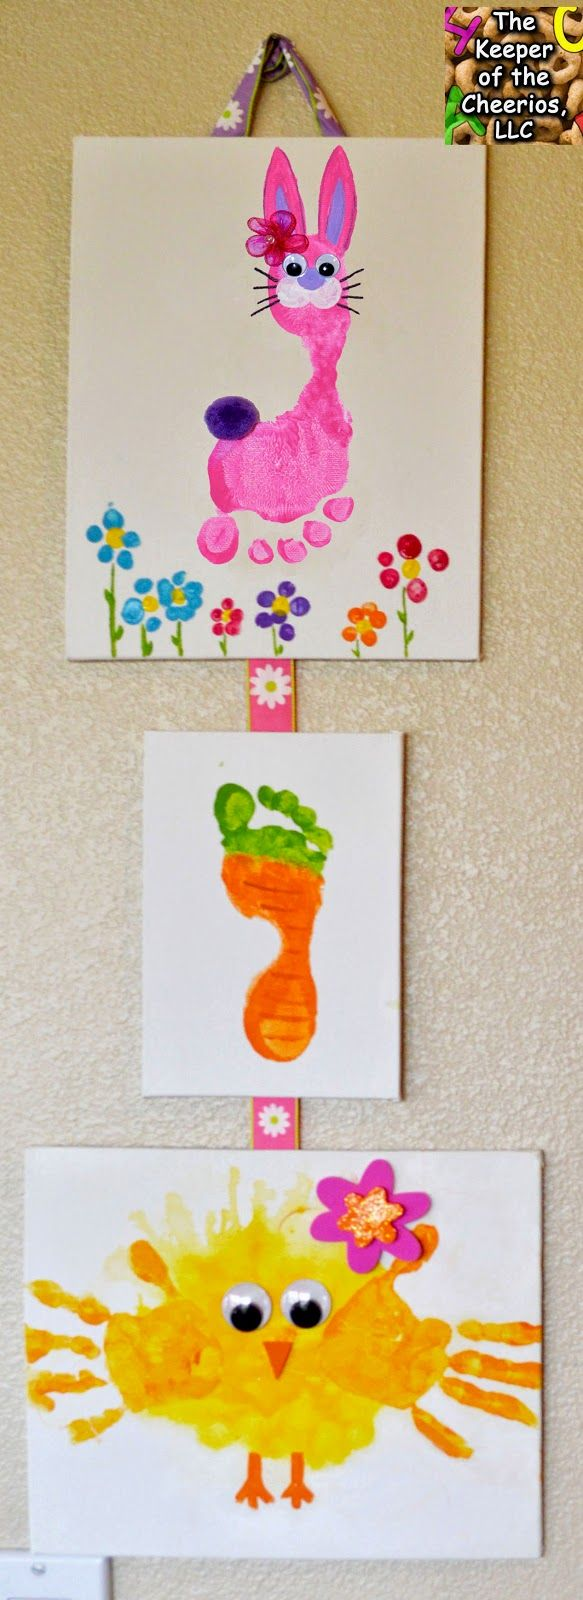 The Keeper of the Cheerios: Easter Hand Print and Footprint Crafts